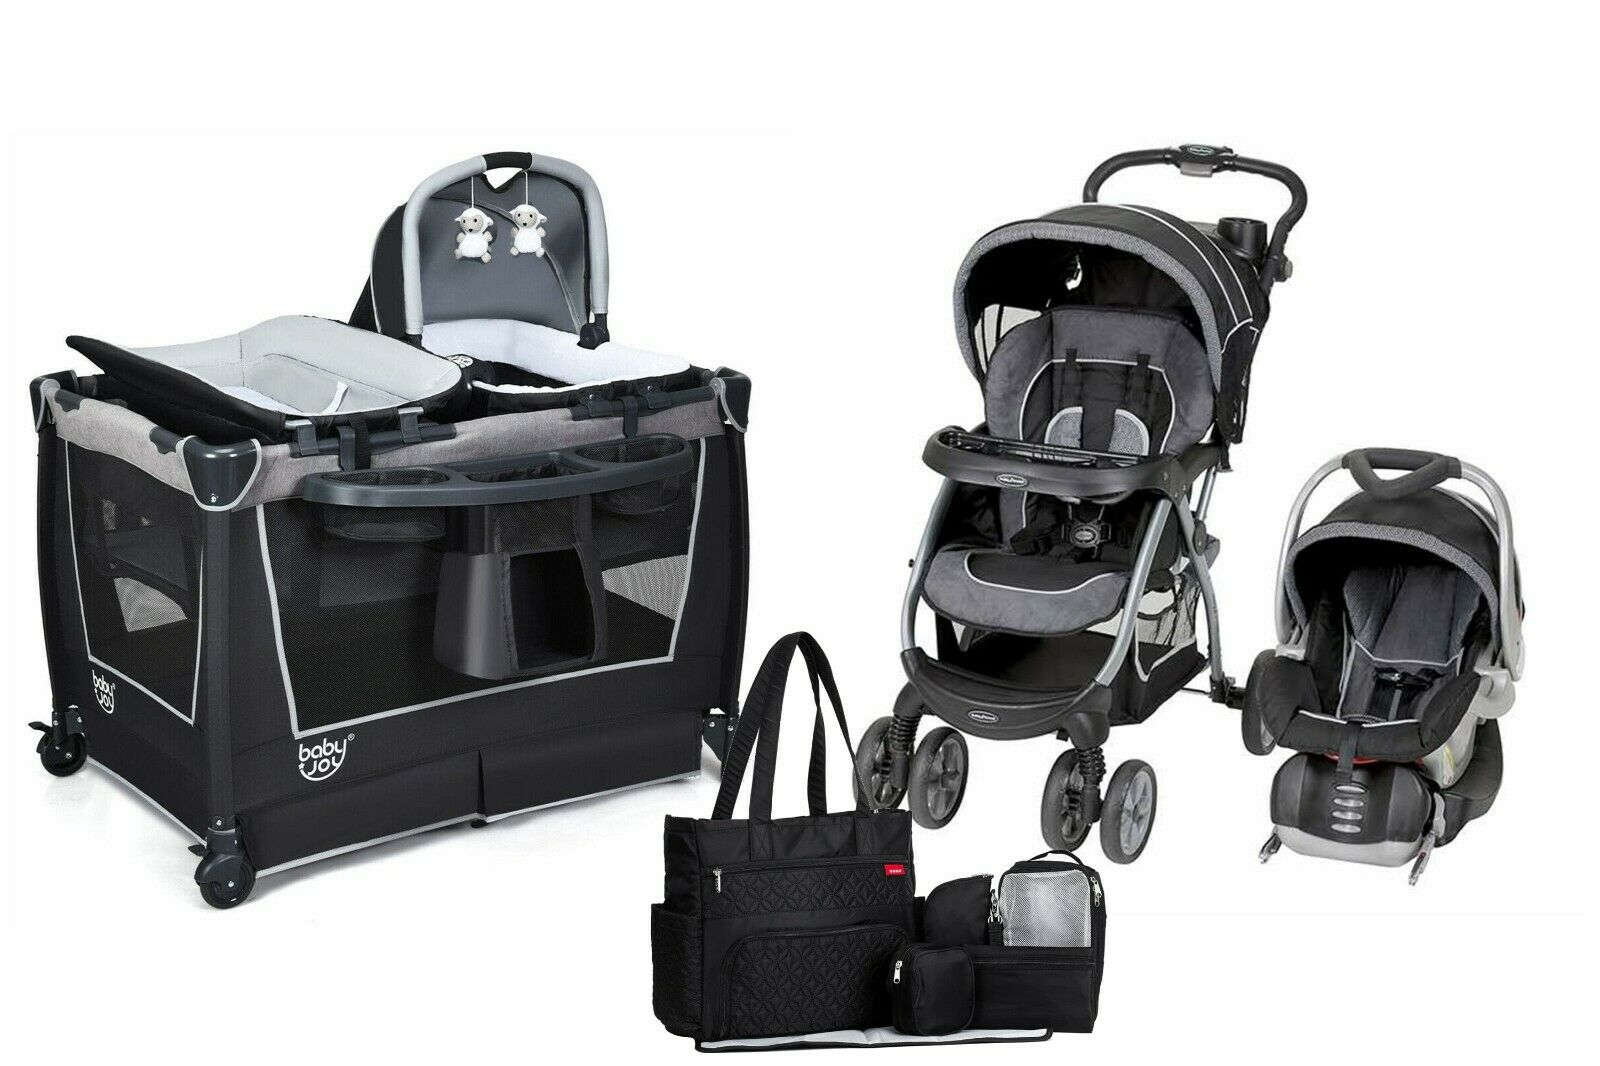 Stroller Travel System Ebay Baby Stroller Travel System Combo With Car Seat Infant Playard Diaper Bag